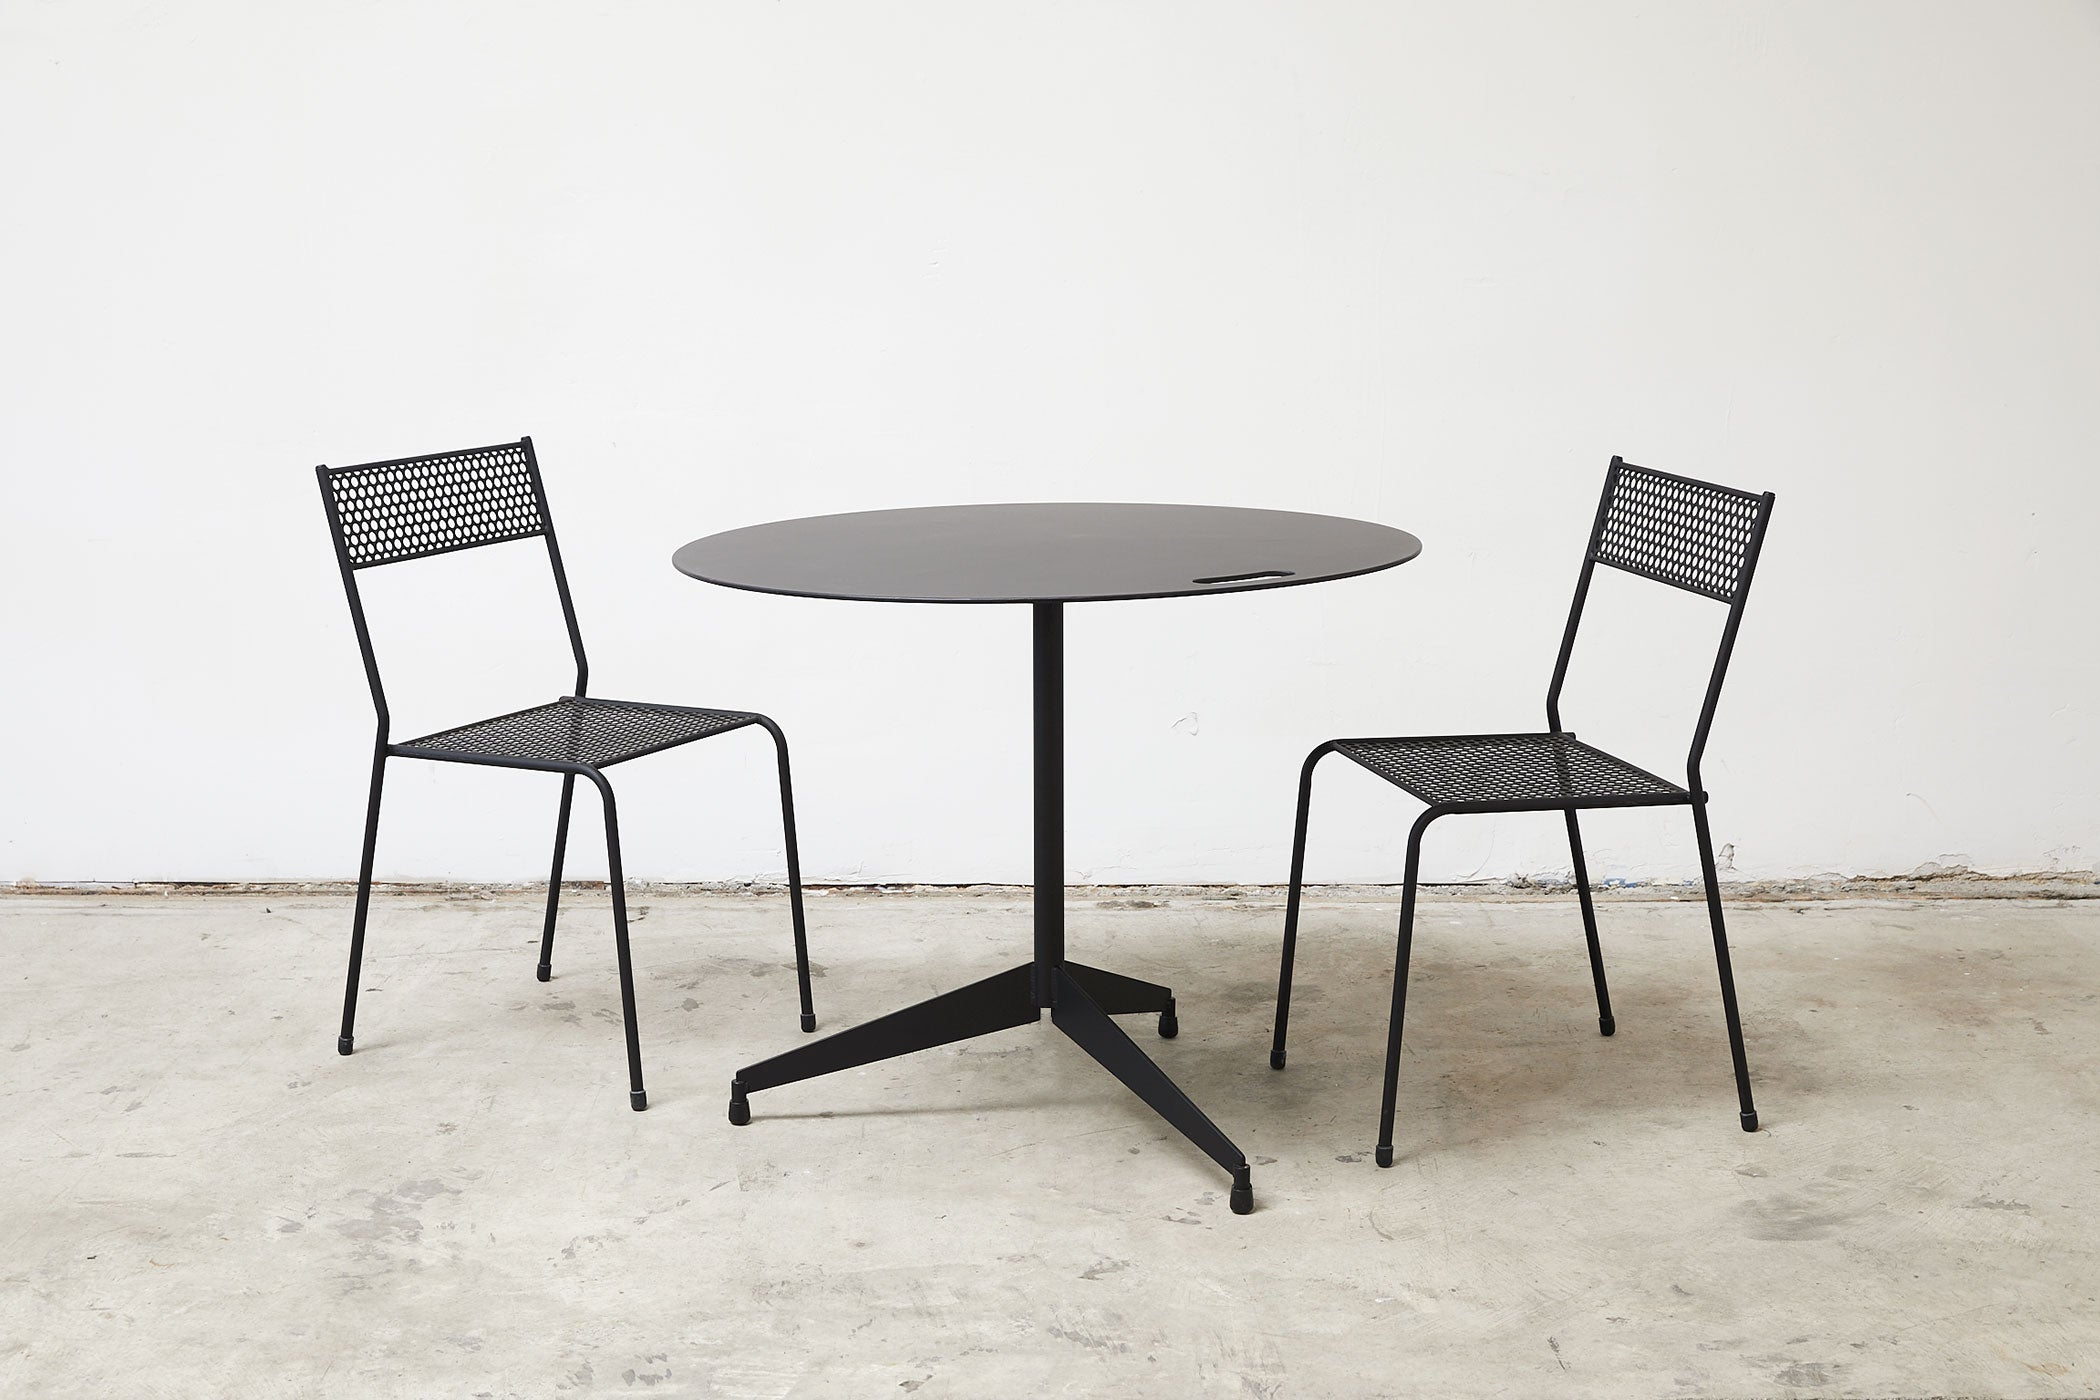 RAD Furniture's Round Aluminum-Top Cafe Table for Four with Cafe Chairs